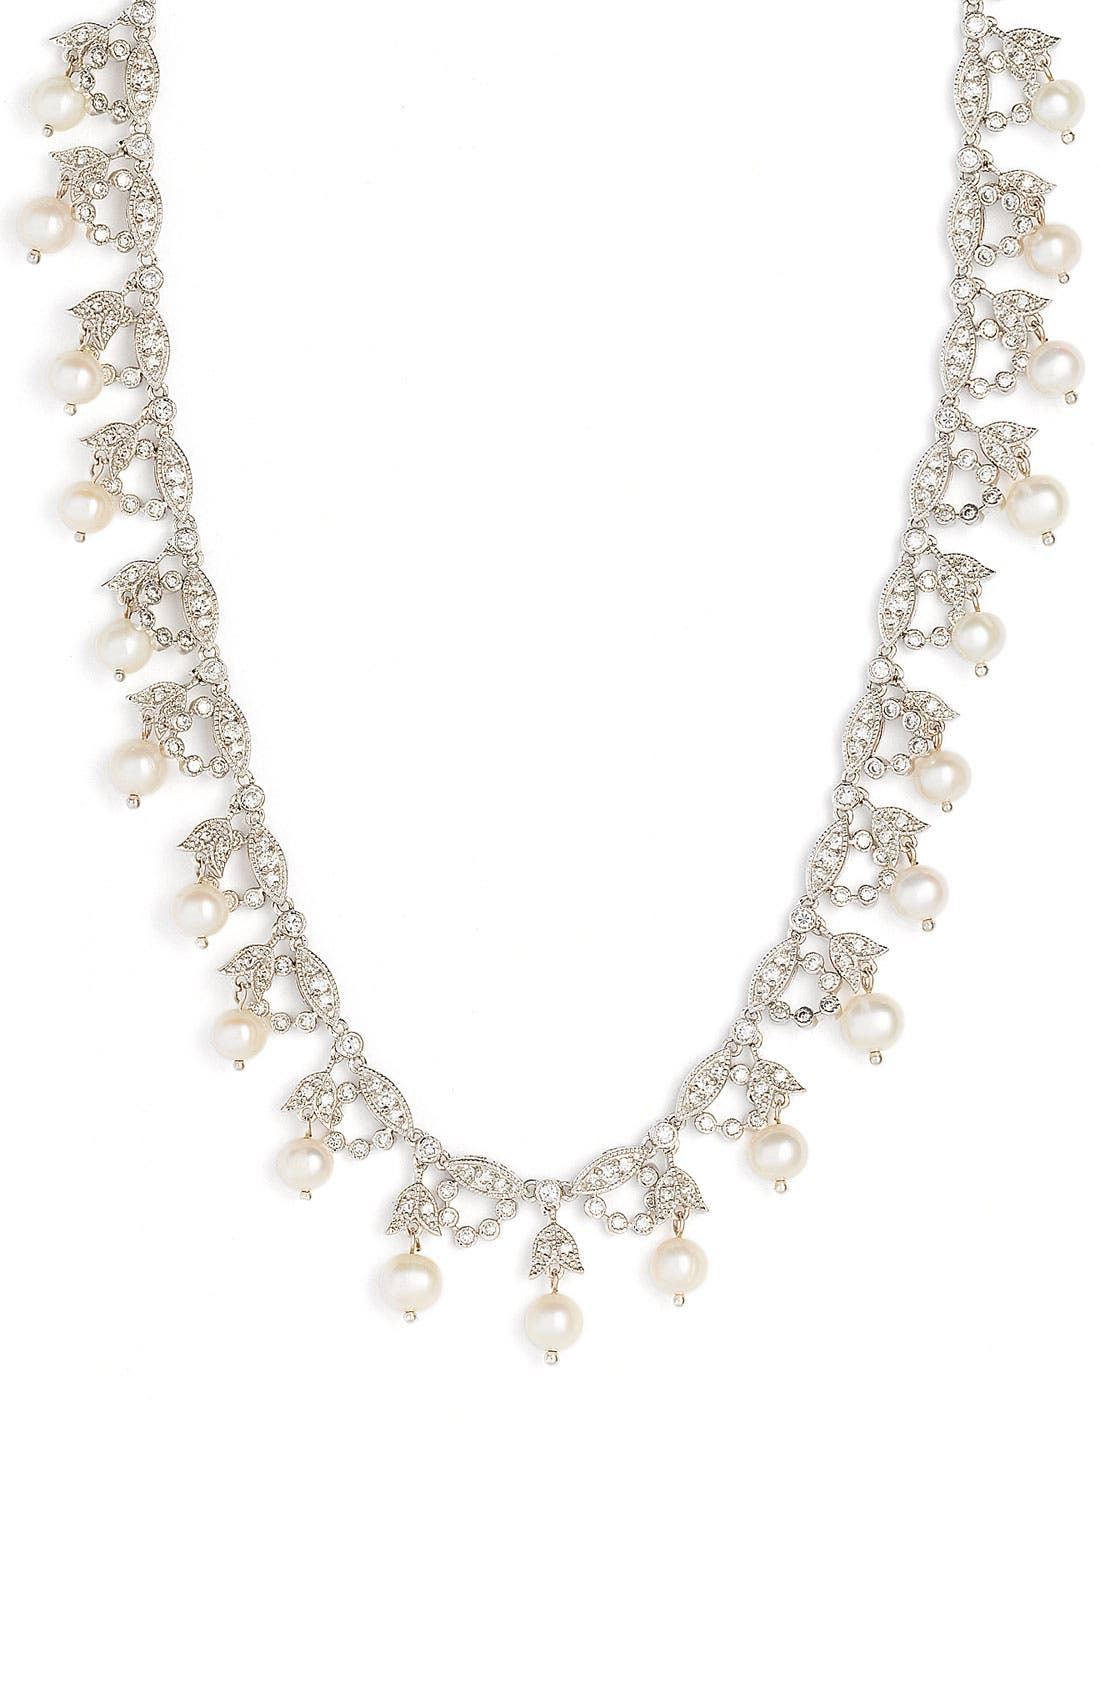 Alternate Image 1 Selected - CZ by Kenneth Jay Lane Glass Pearl Garland Necklace